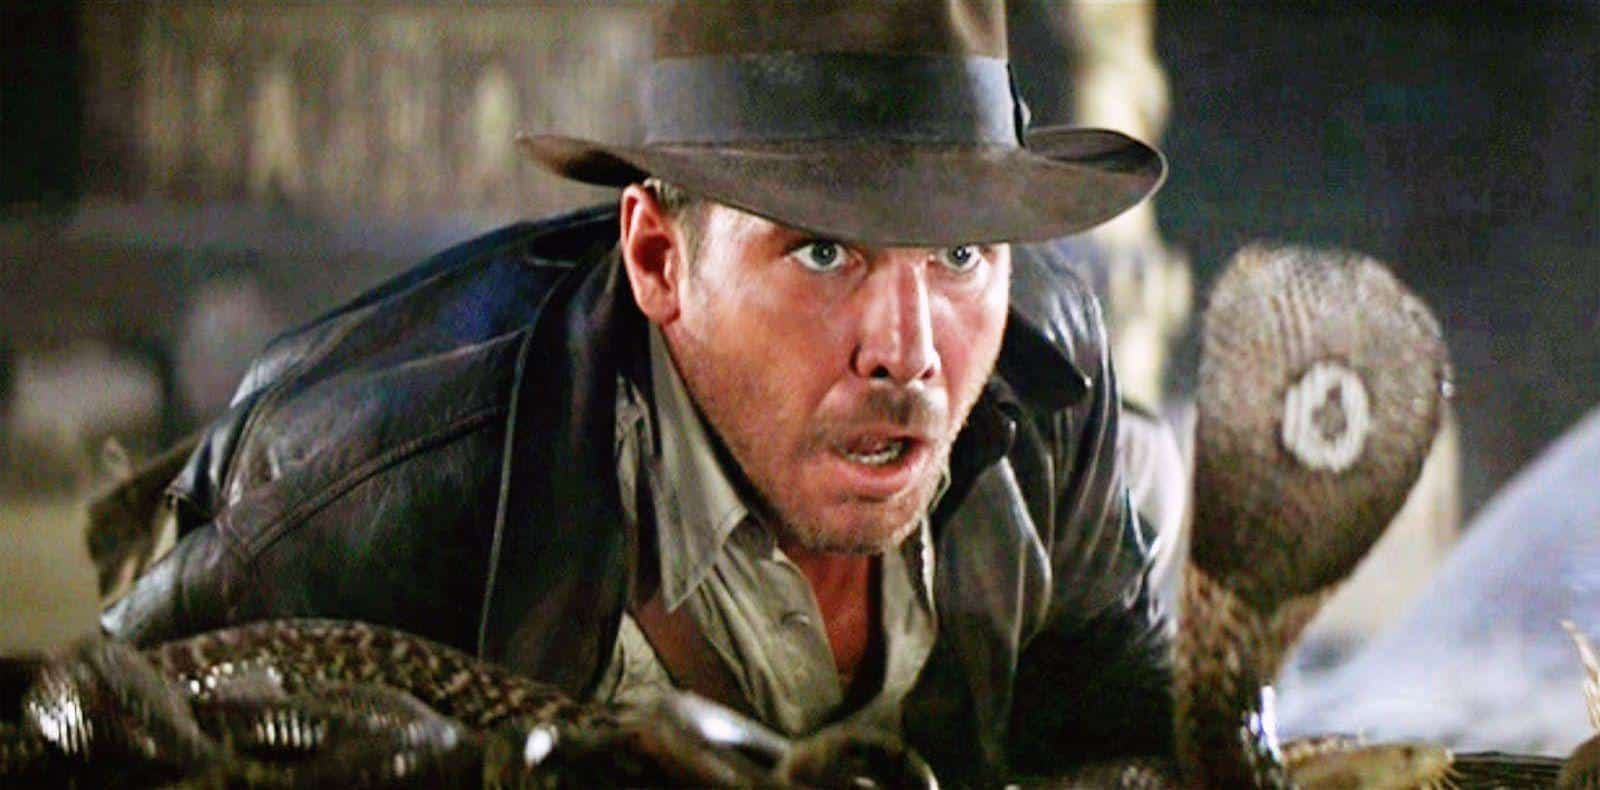 indy Indiana jones Spielberg